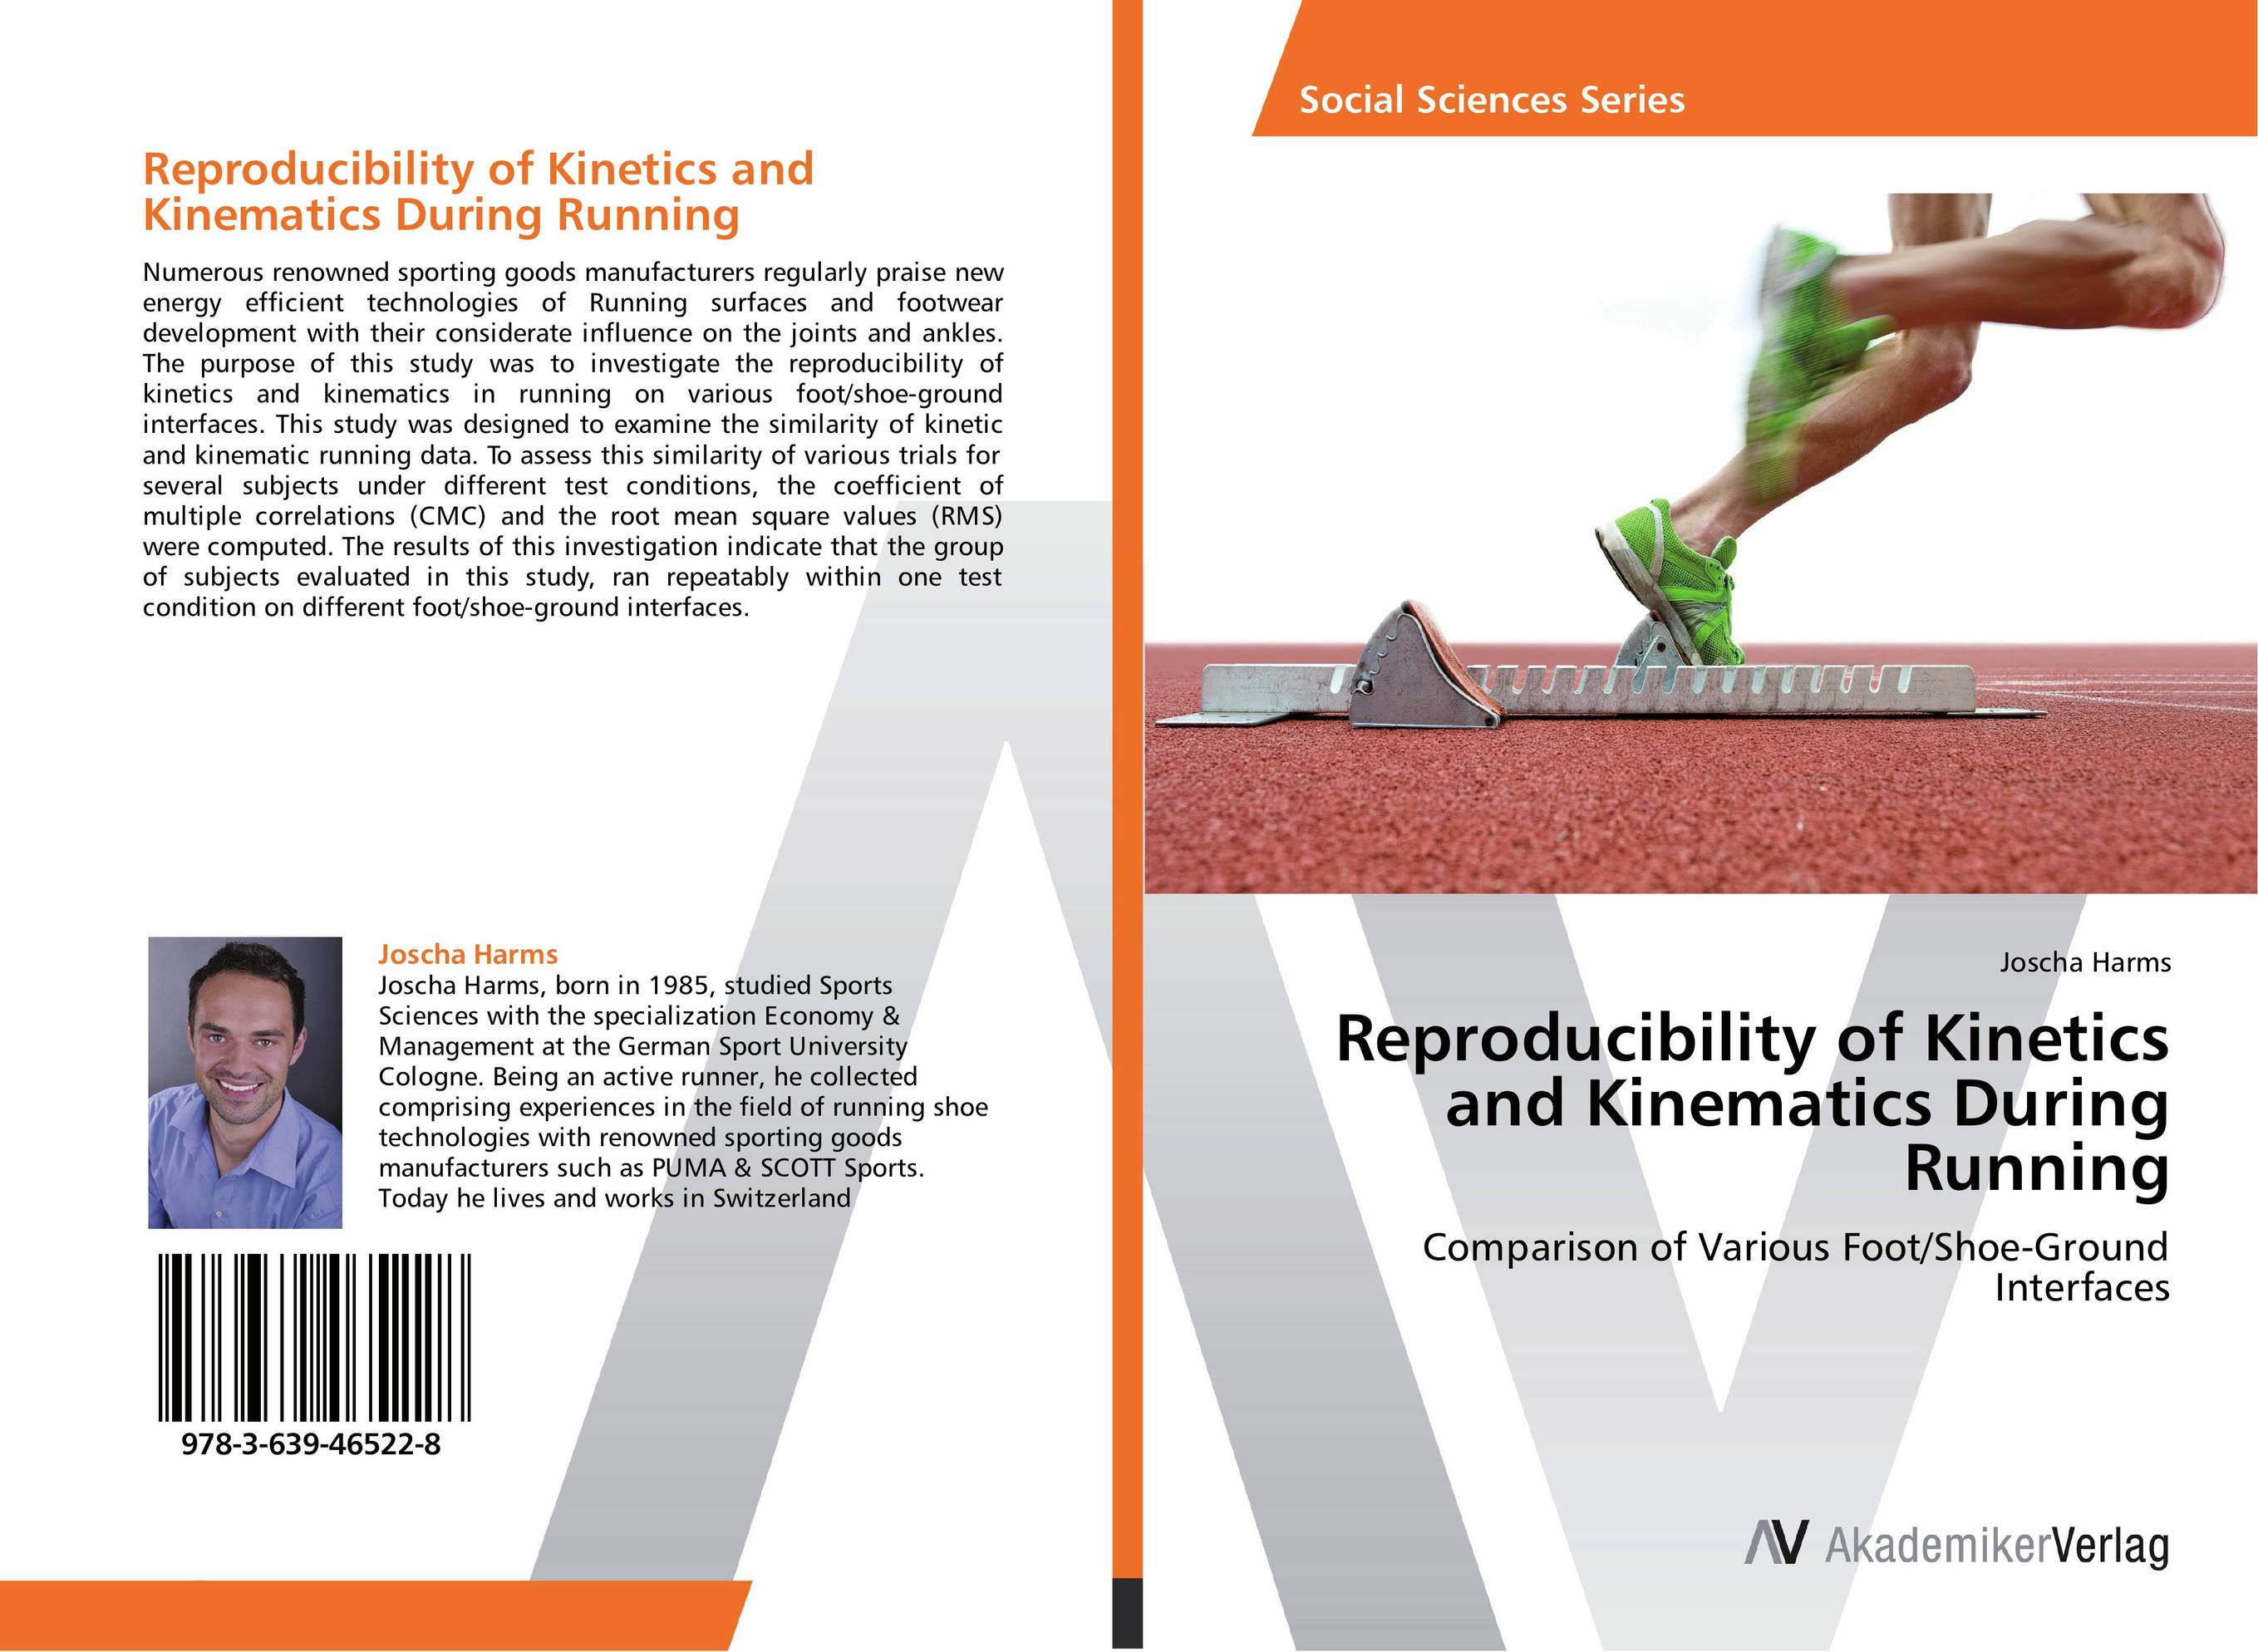 Reproducibility of Kinetics and Kinematics During Running